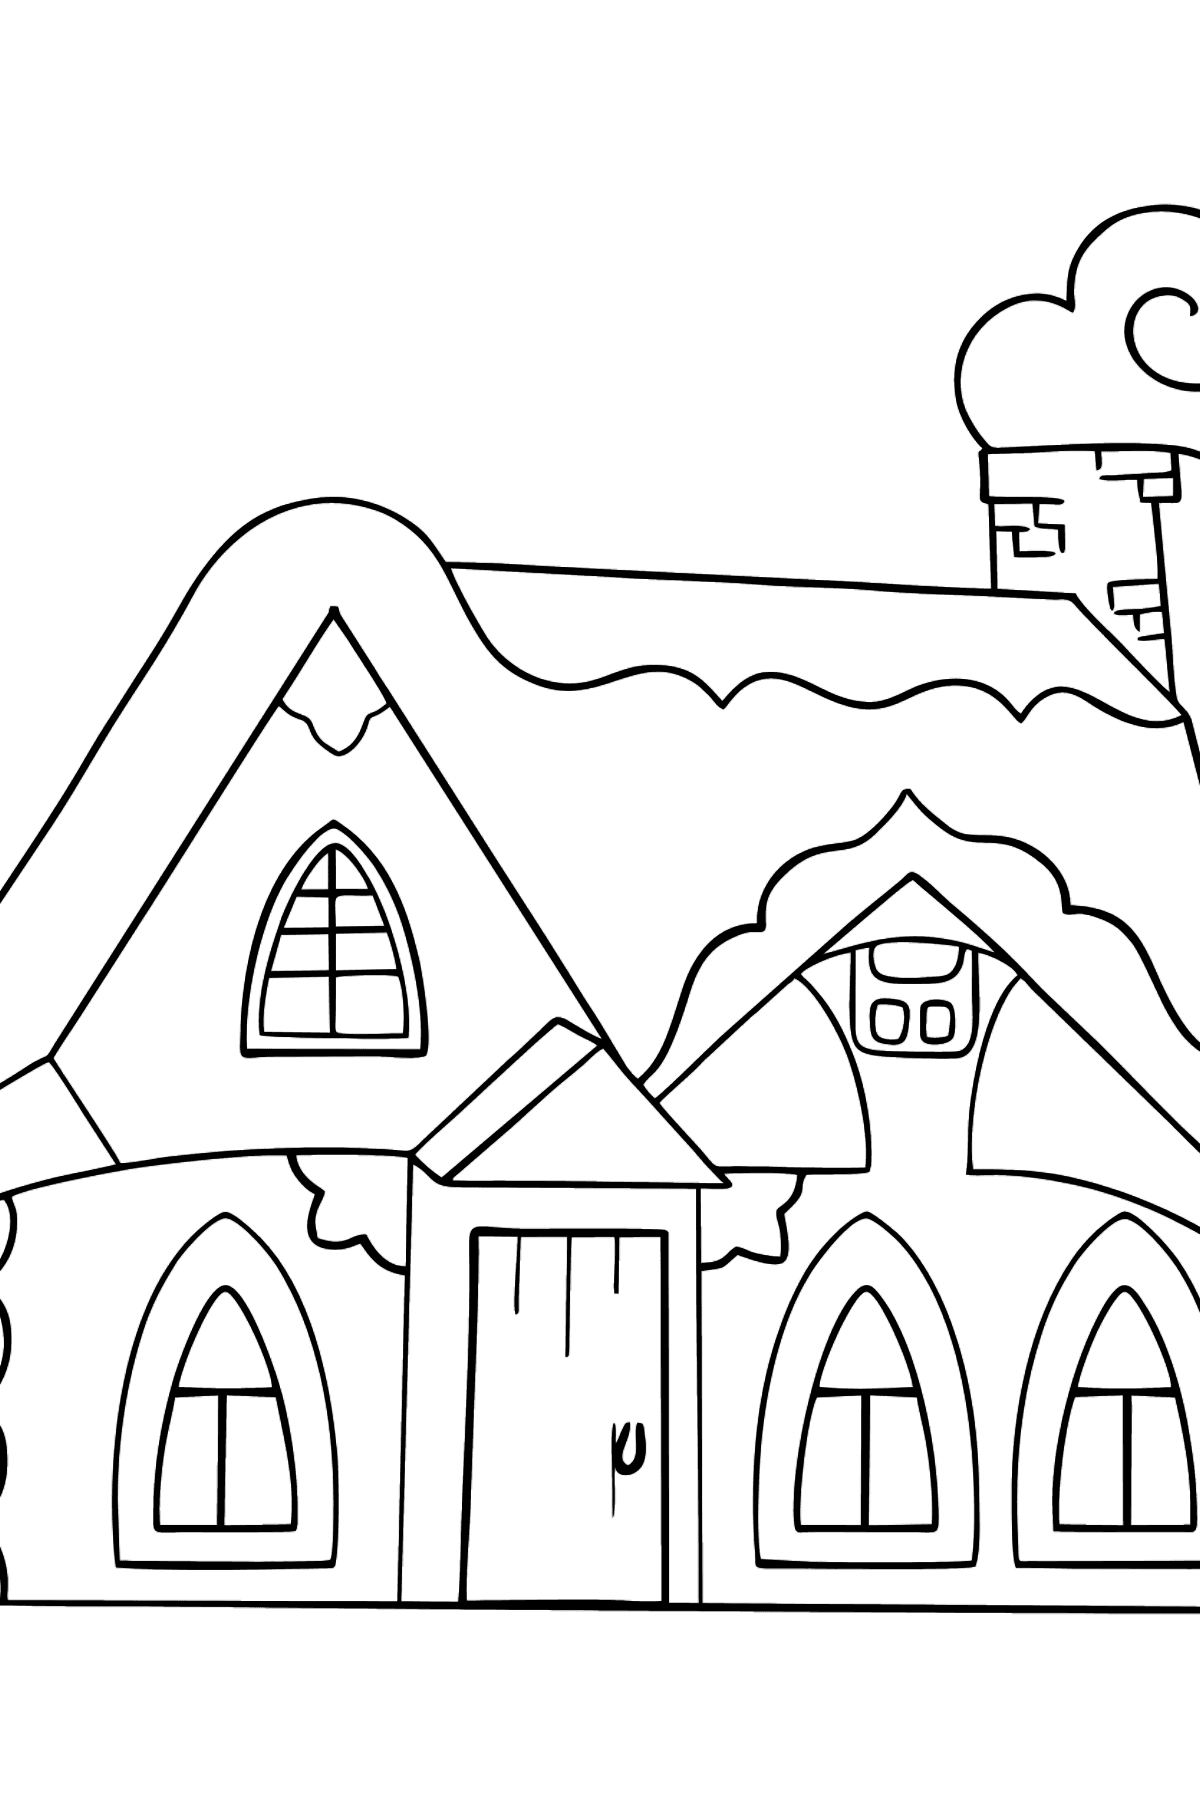 Simple Coloring Page - A Fairytale House - Coloring Pages for Kids